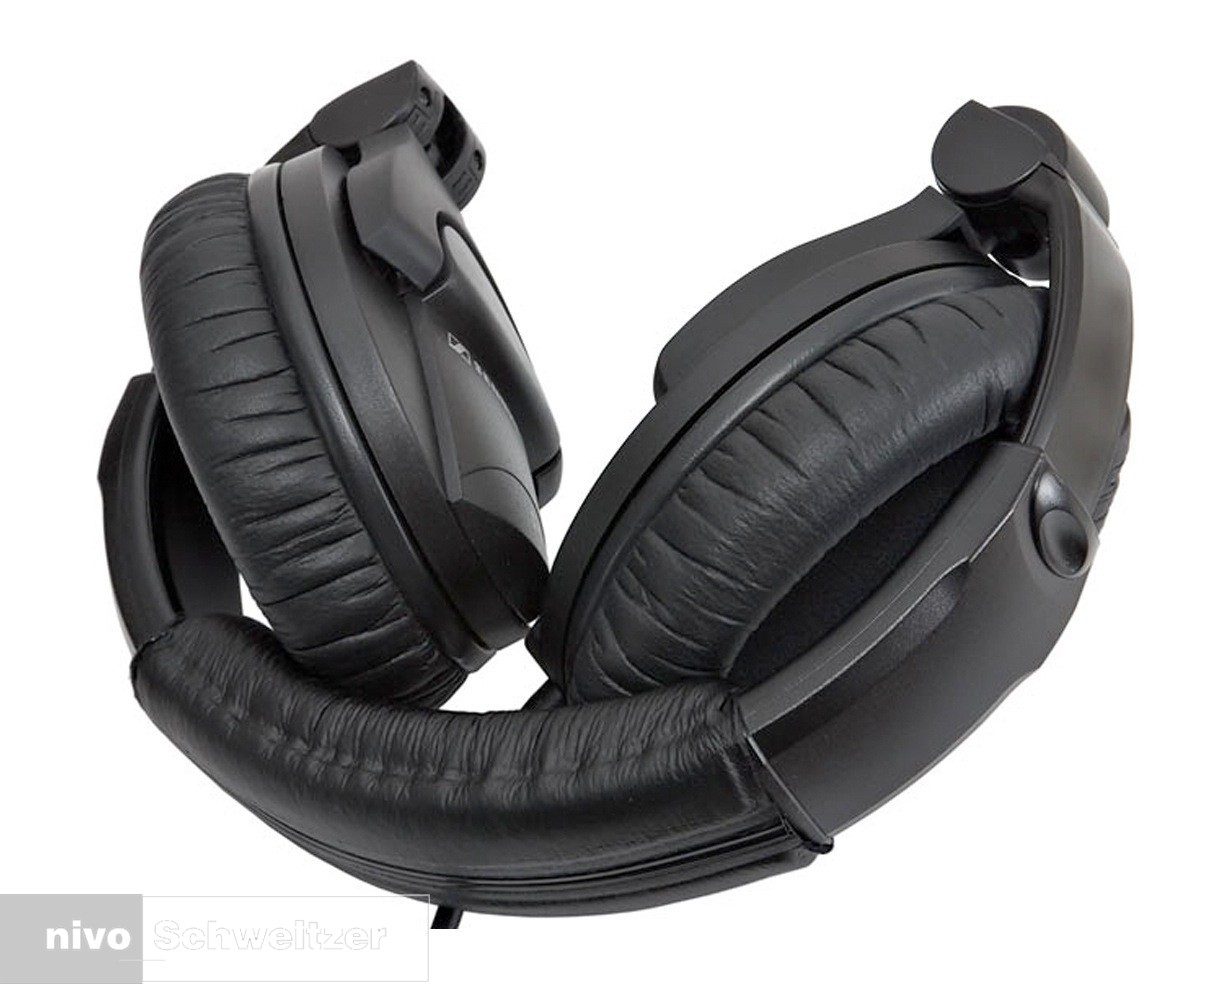 SENNHEISER 506845 HD280 Pro monitoring headphone, zwart [over-ear]